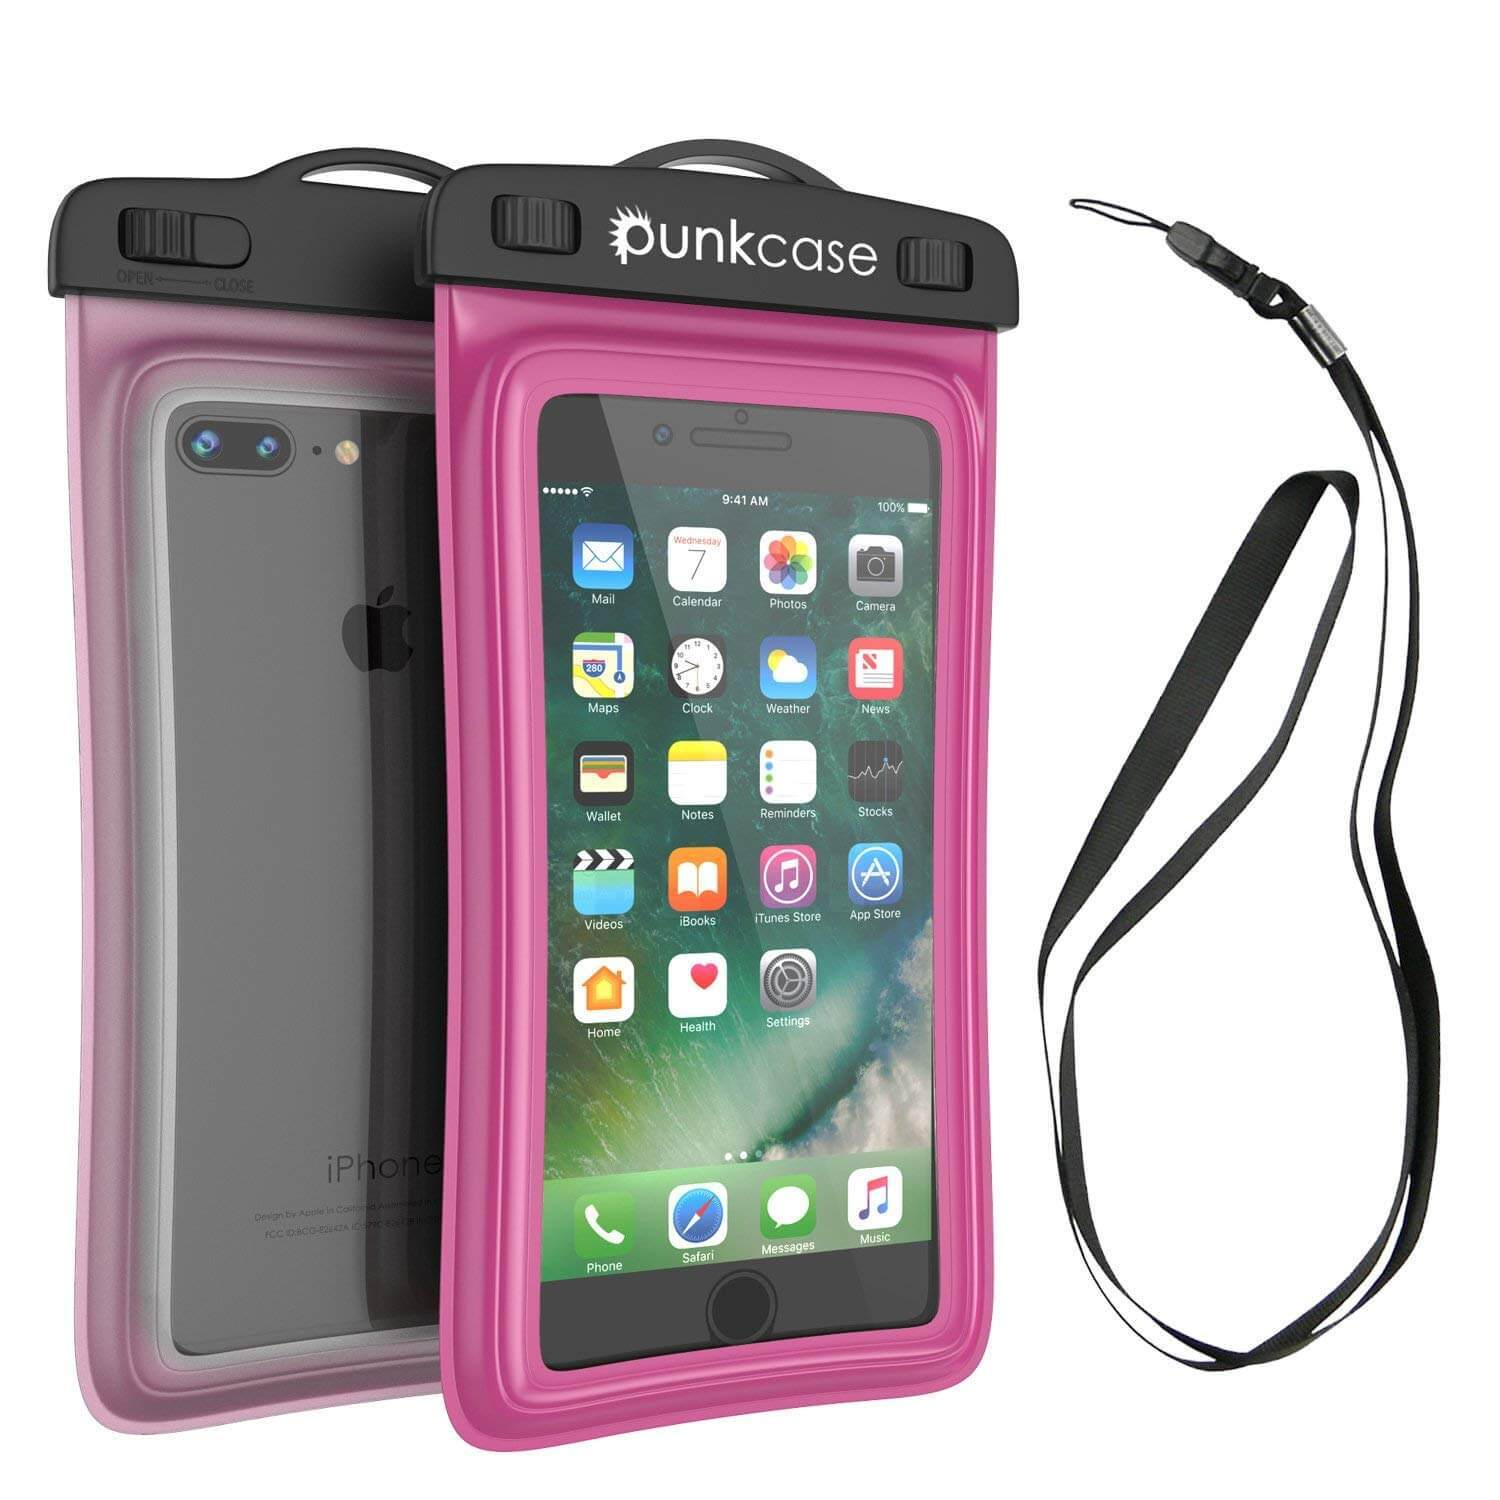 Waterproof Phone Pouch, PunkBag Universal Floating Dry Case Bag for most Cell Phones [Pink]